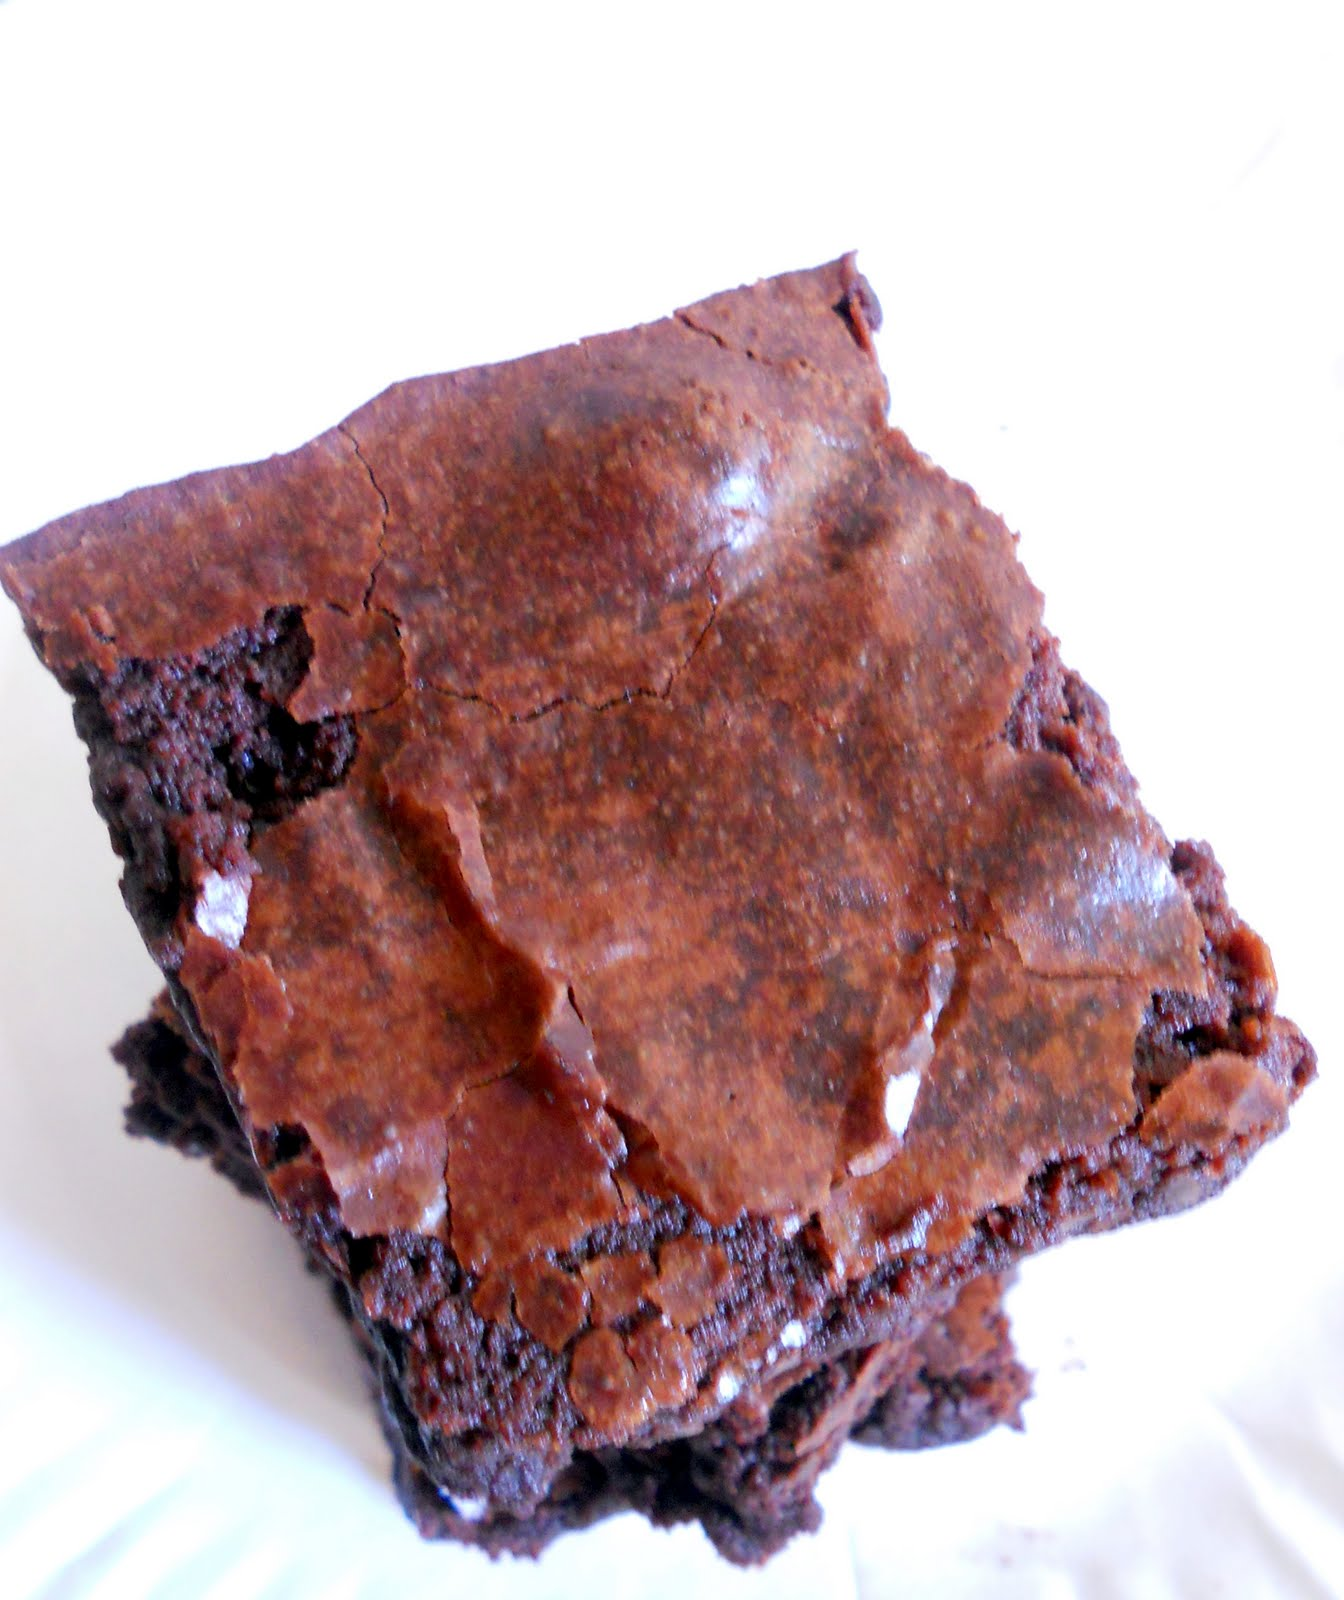 The Year of The Cookie: Cocoa Brownies with Browned Butter and Walnuts